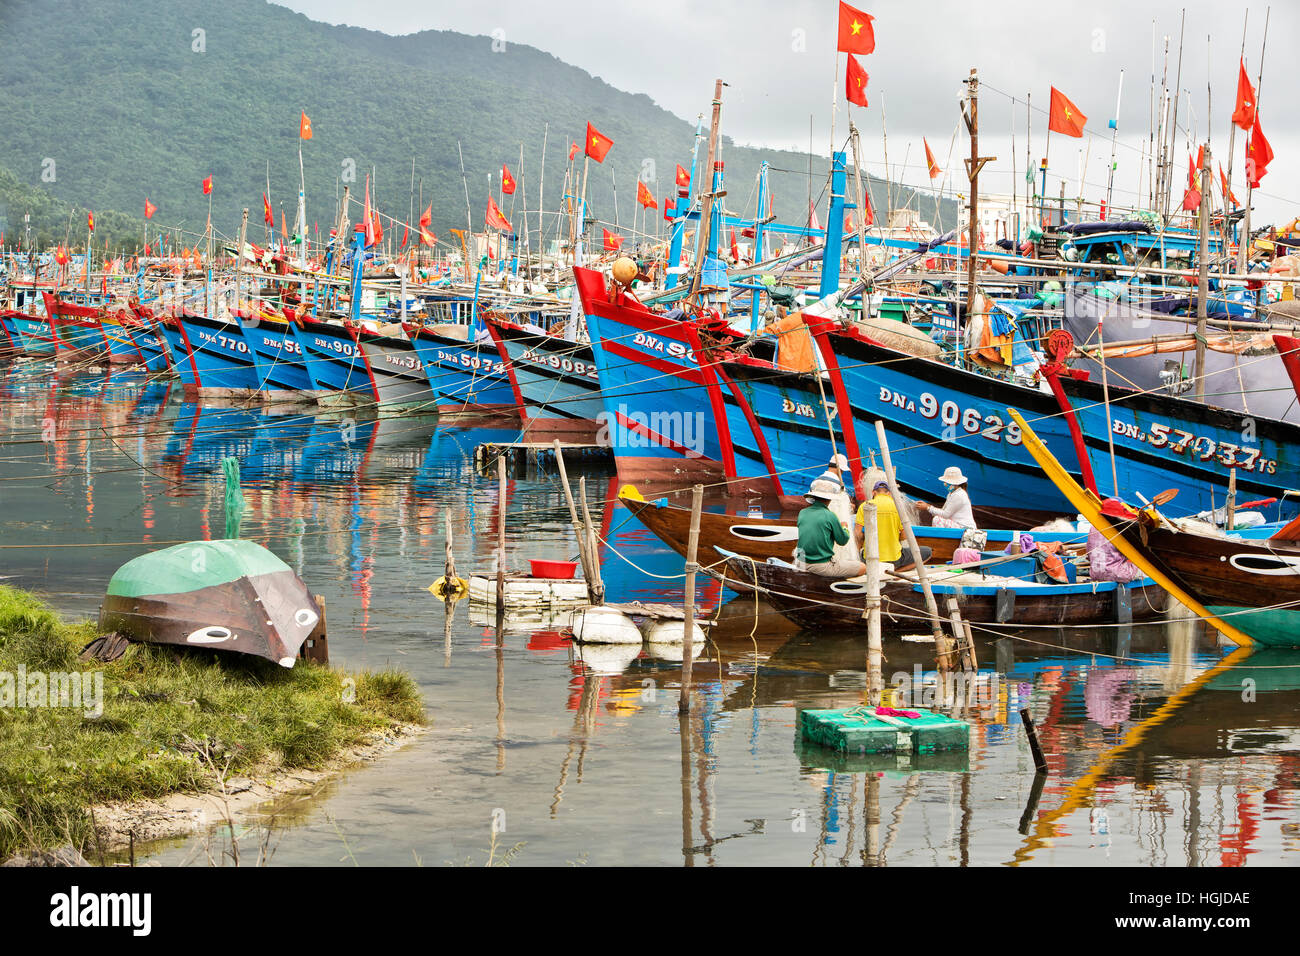 Colorful commercial fishing boats anchored in protected Da Nang harbor. Stock Photo